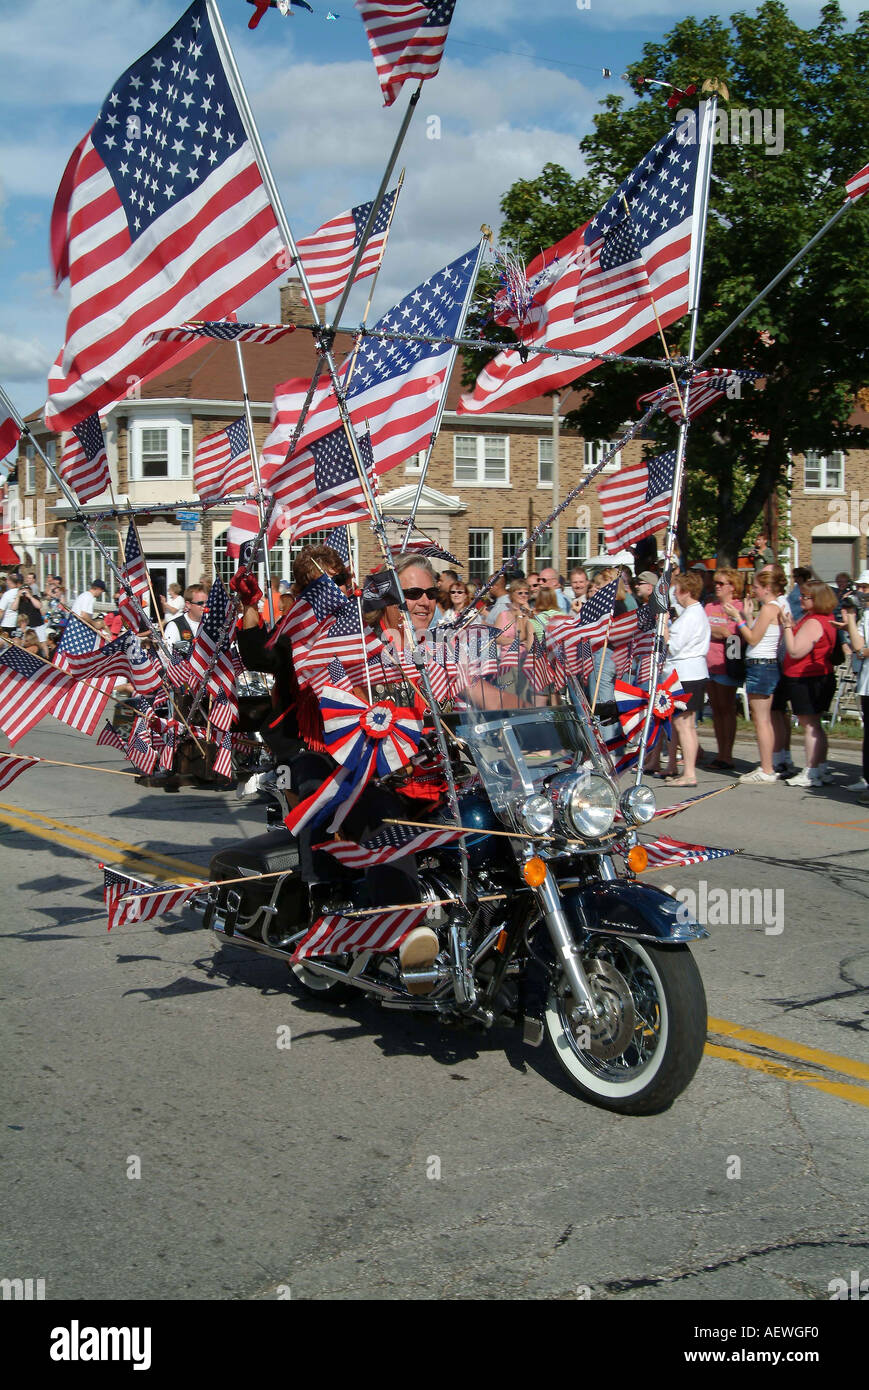 Riding a harley motor cycle with 101 American flags fixed on it